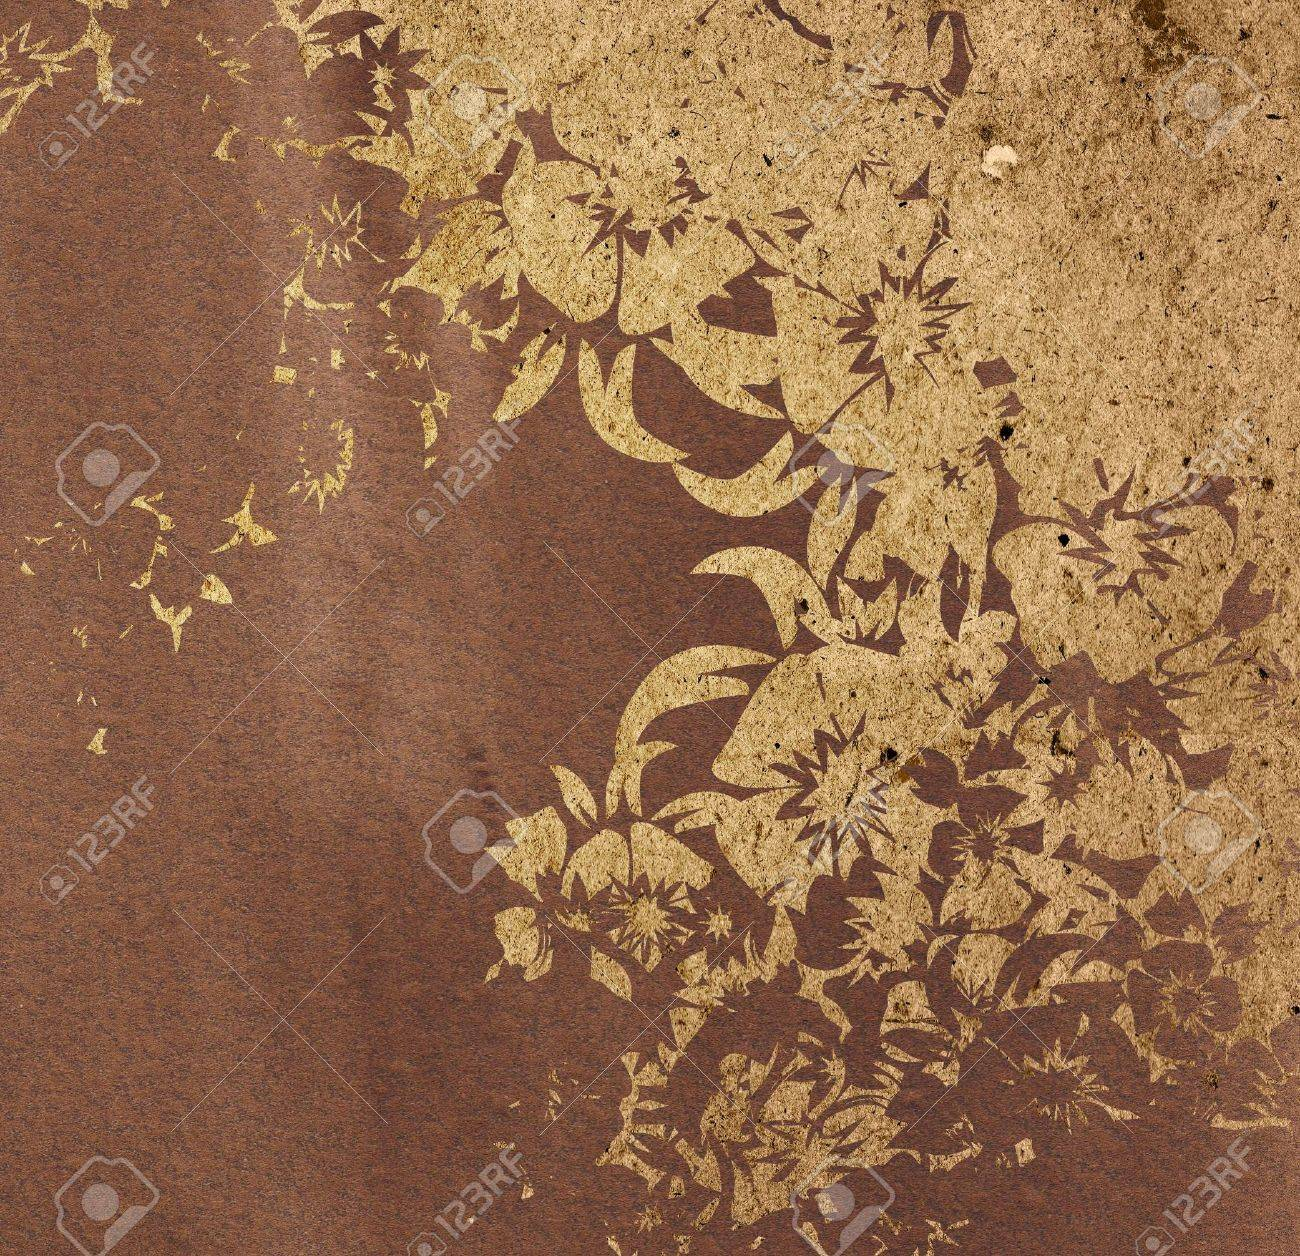 asia style textures and backgrounds Stock Photo - 6741525